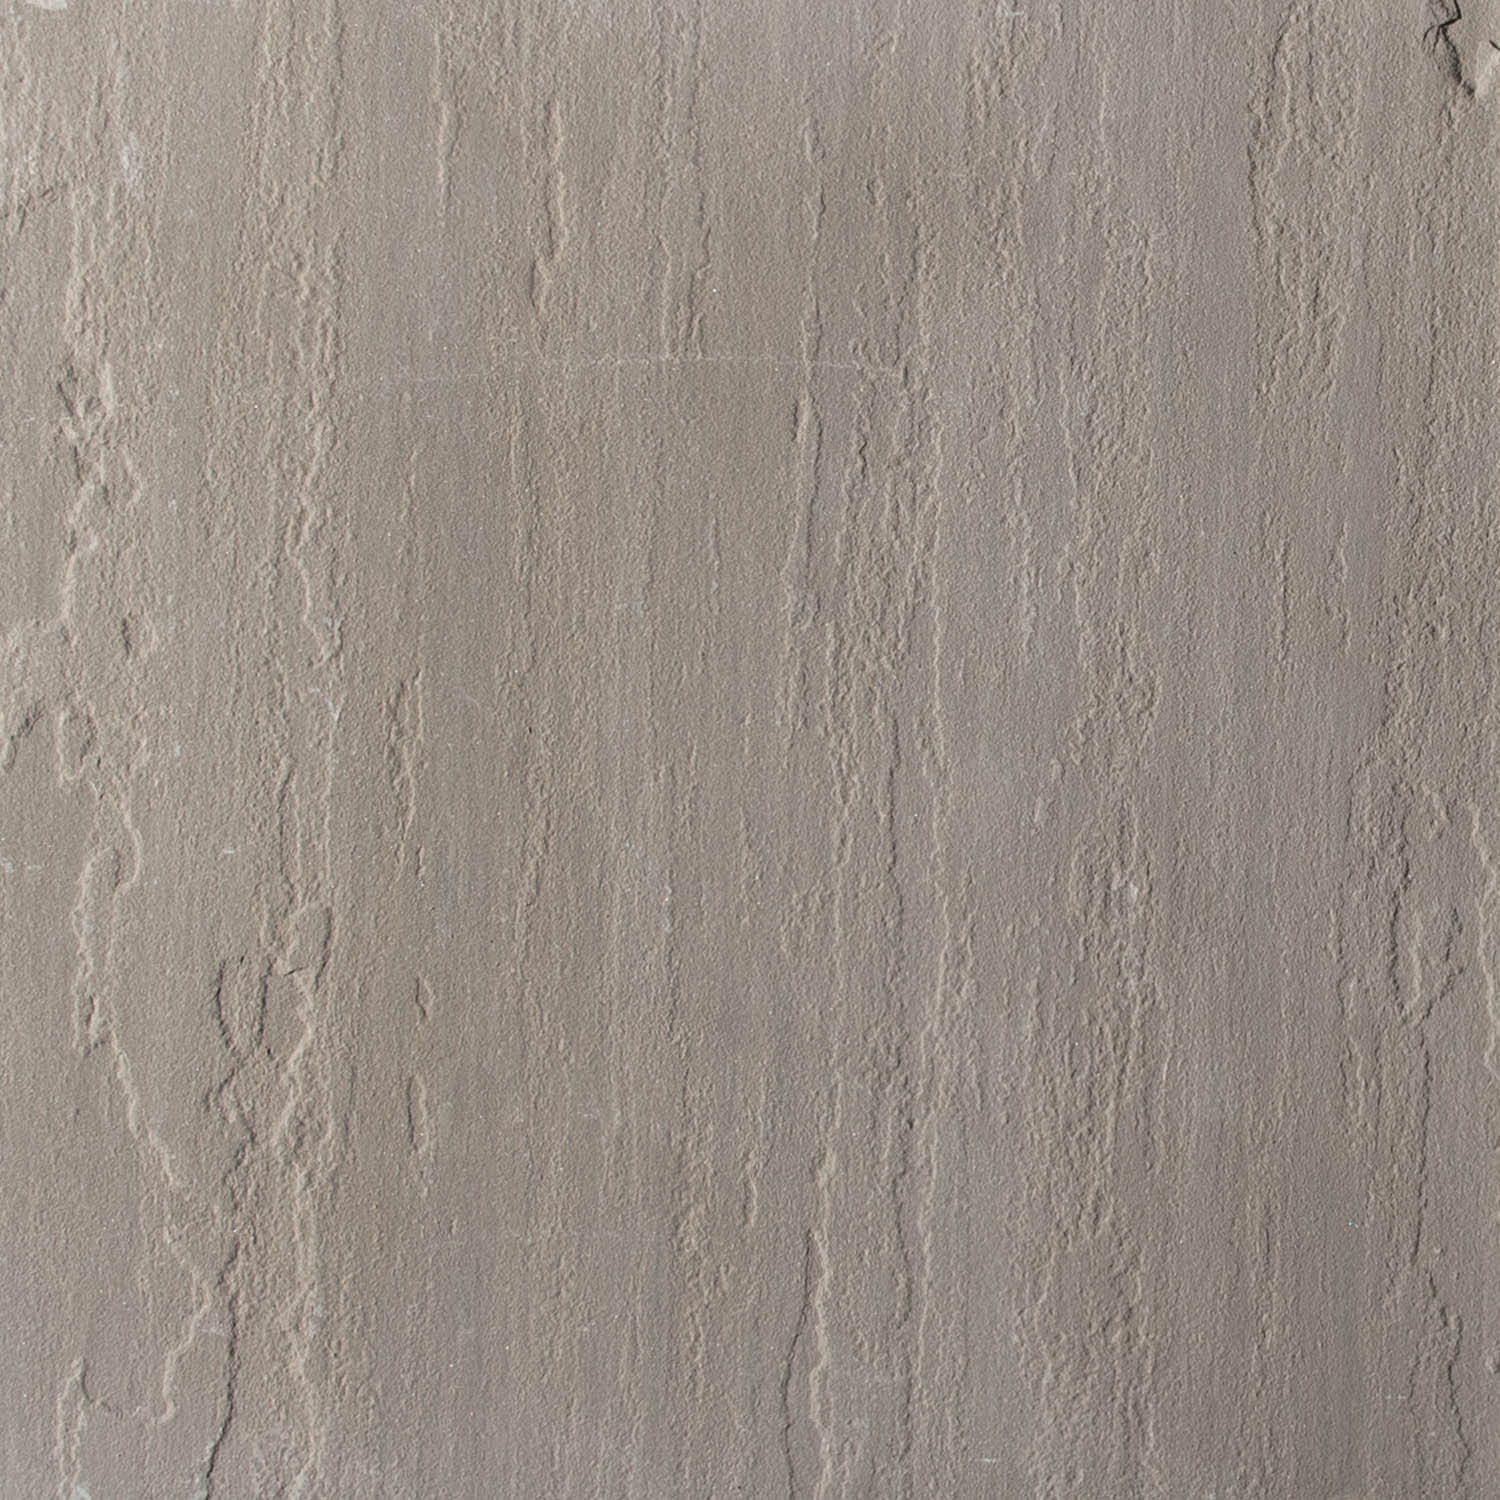 India Slate Grey coping swatch